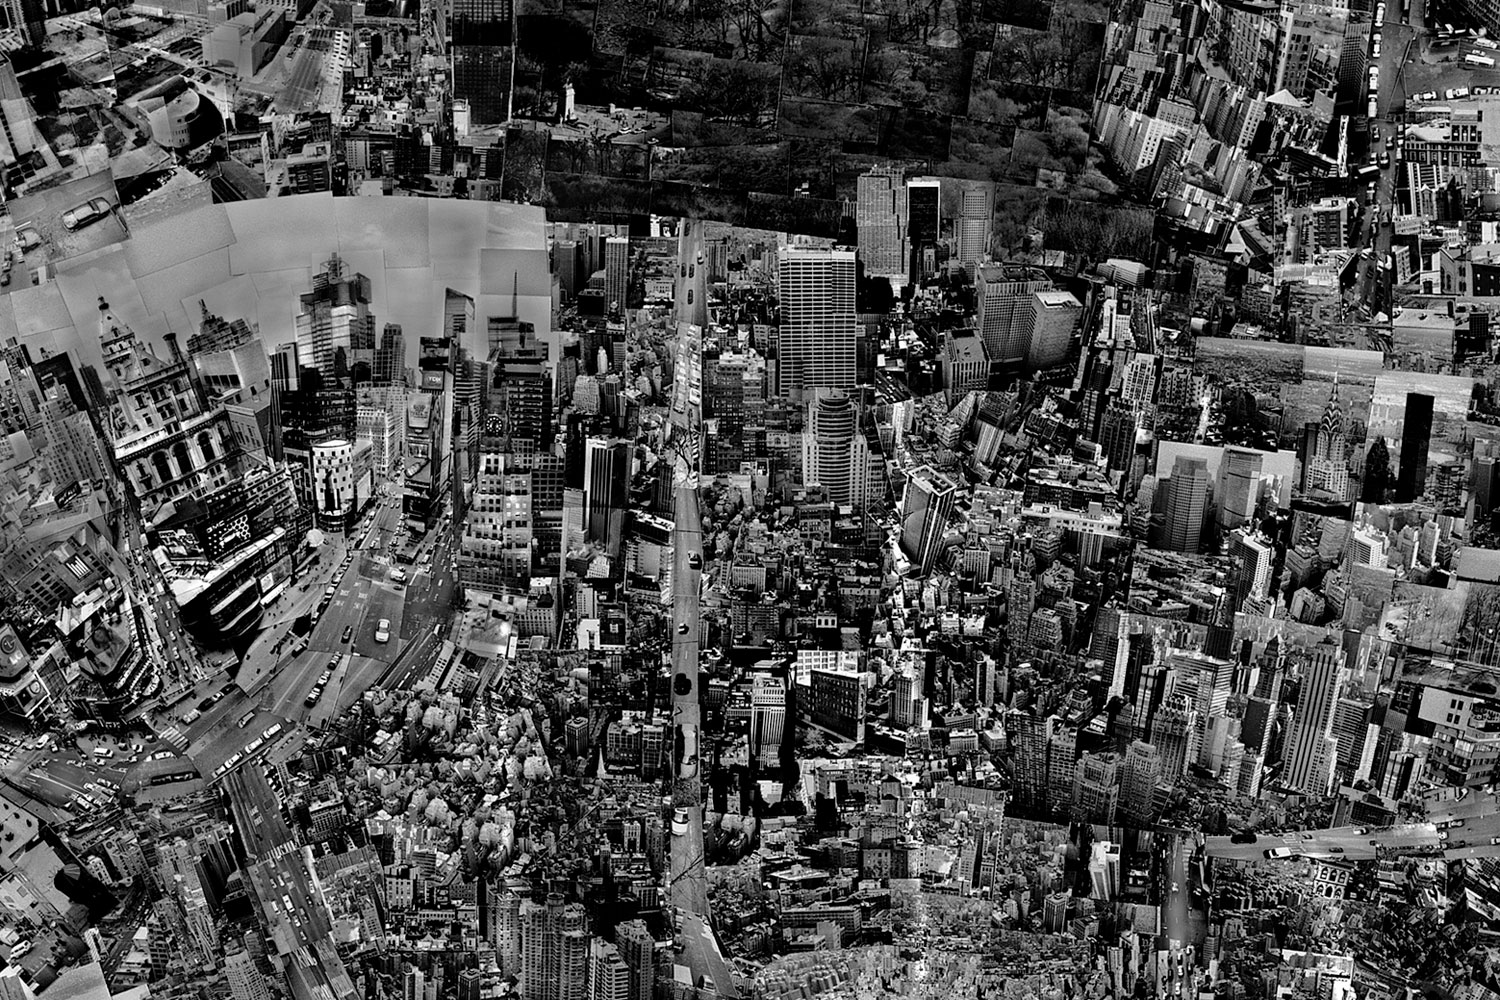 Diorama Map New York, 2006, Detail:  Shooting was very smooth as I had some friends to help me while shooting in the city. The last time I was in the city was on September 11th. When I came back in 2006, I felt a deep emotion while visiting Ground Zero.